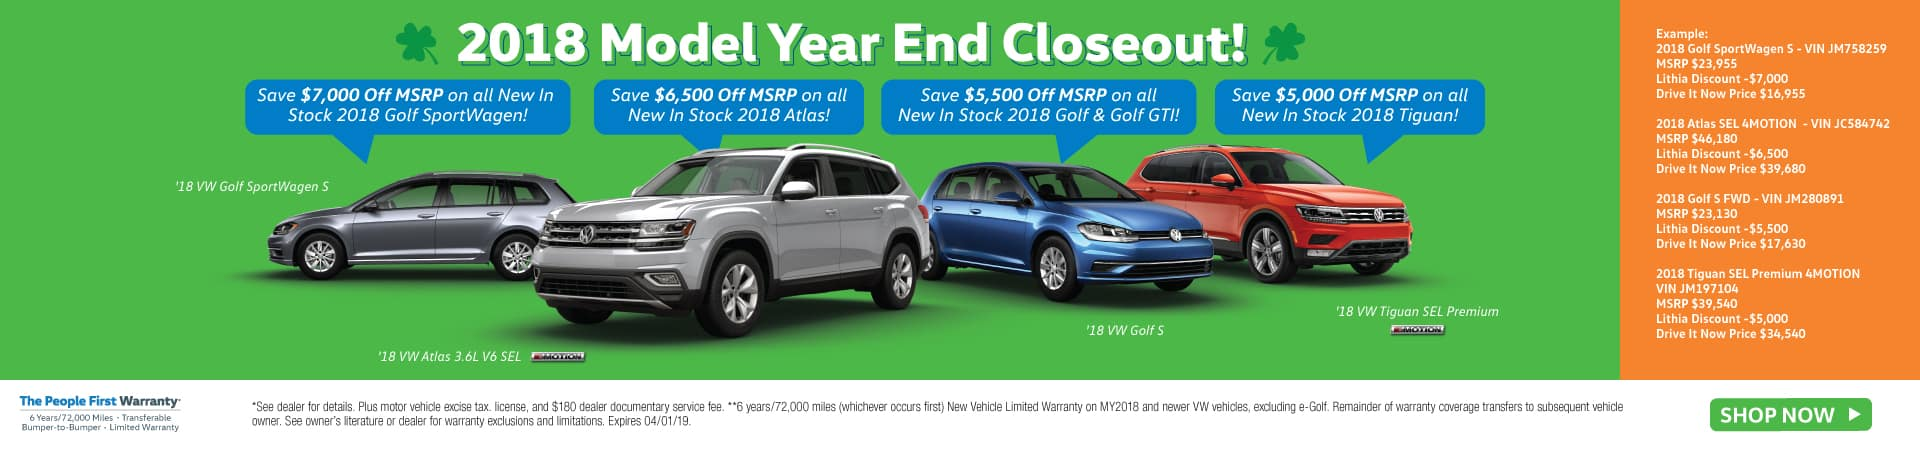 2018 Model Year End Closeout